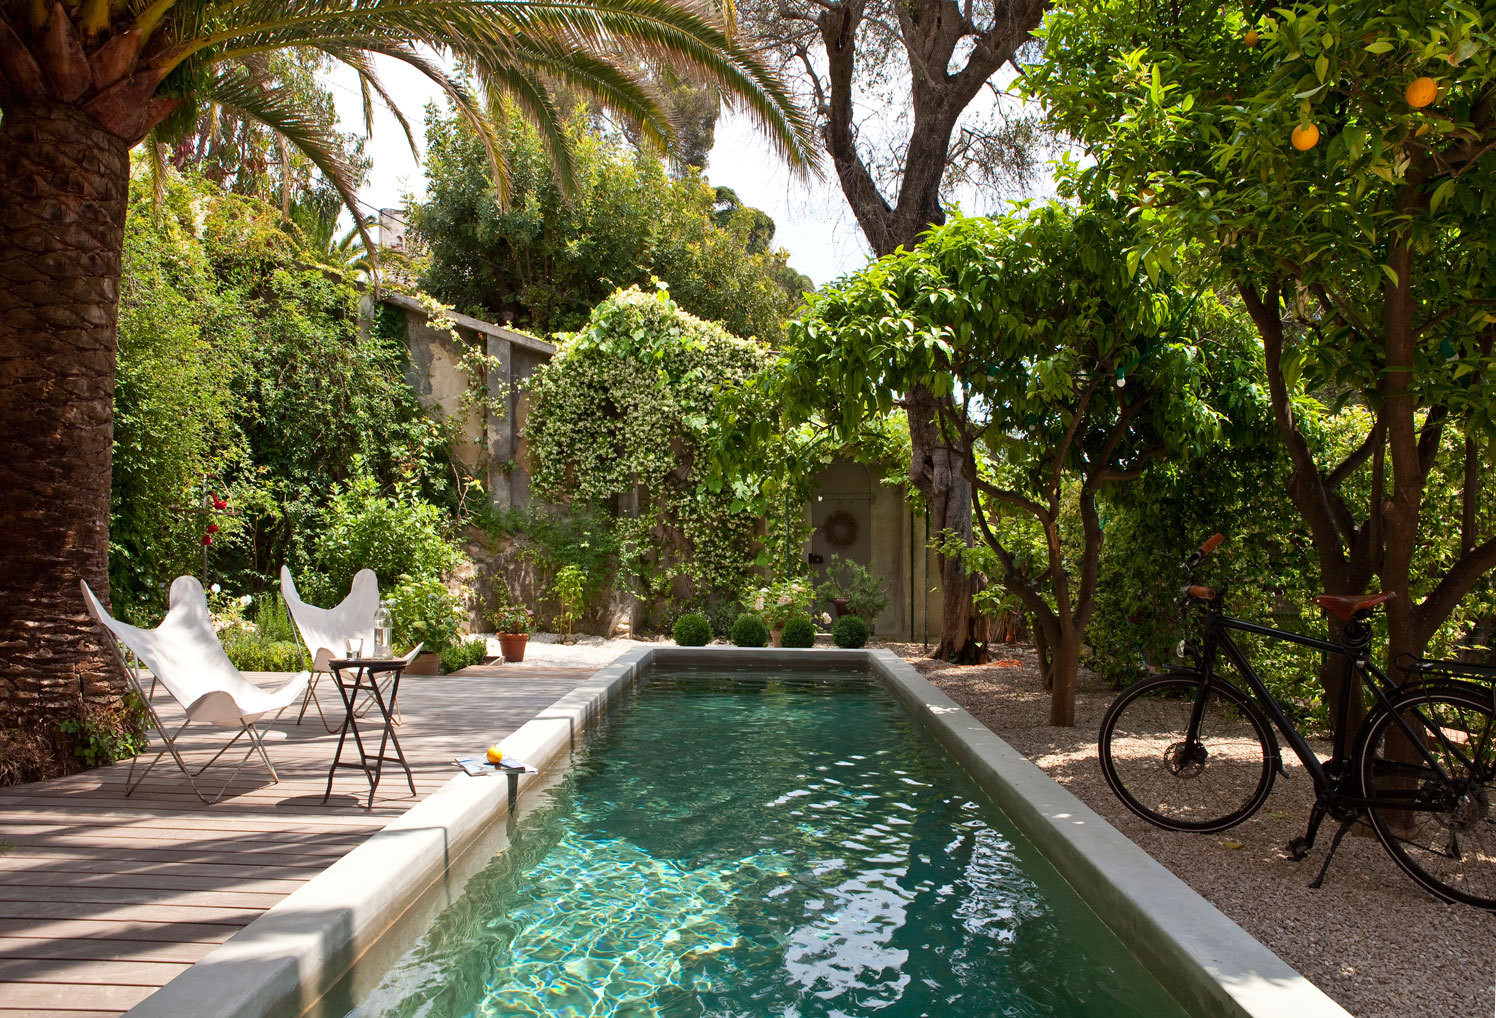 Butterfly chairs flank a minimalist swimming lane in the garden of a home in Nice, designed by Italian architect Piercarlo Dondona.